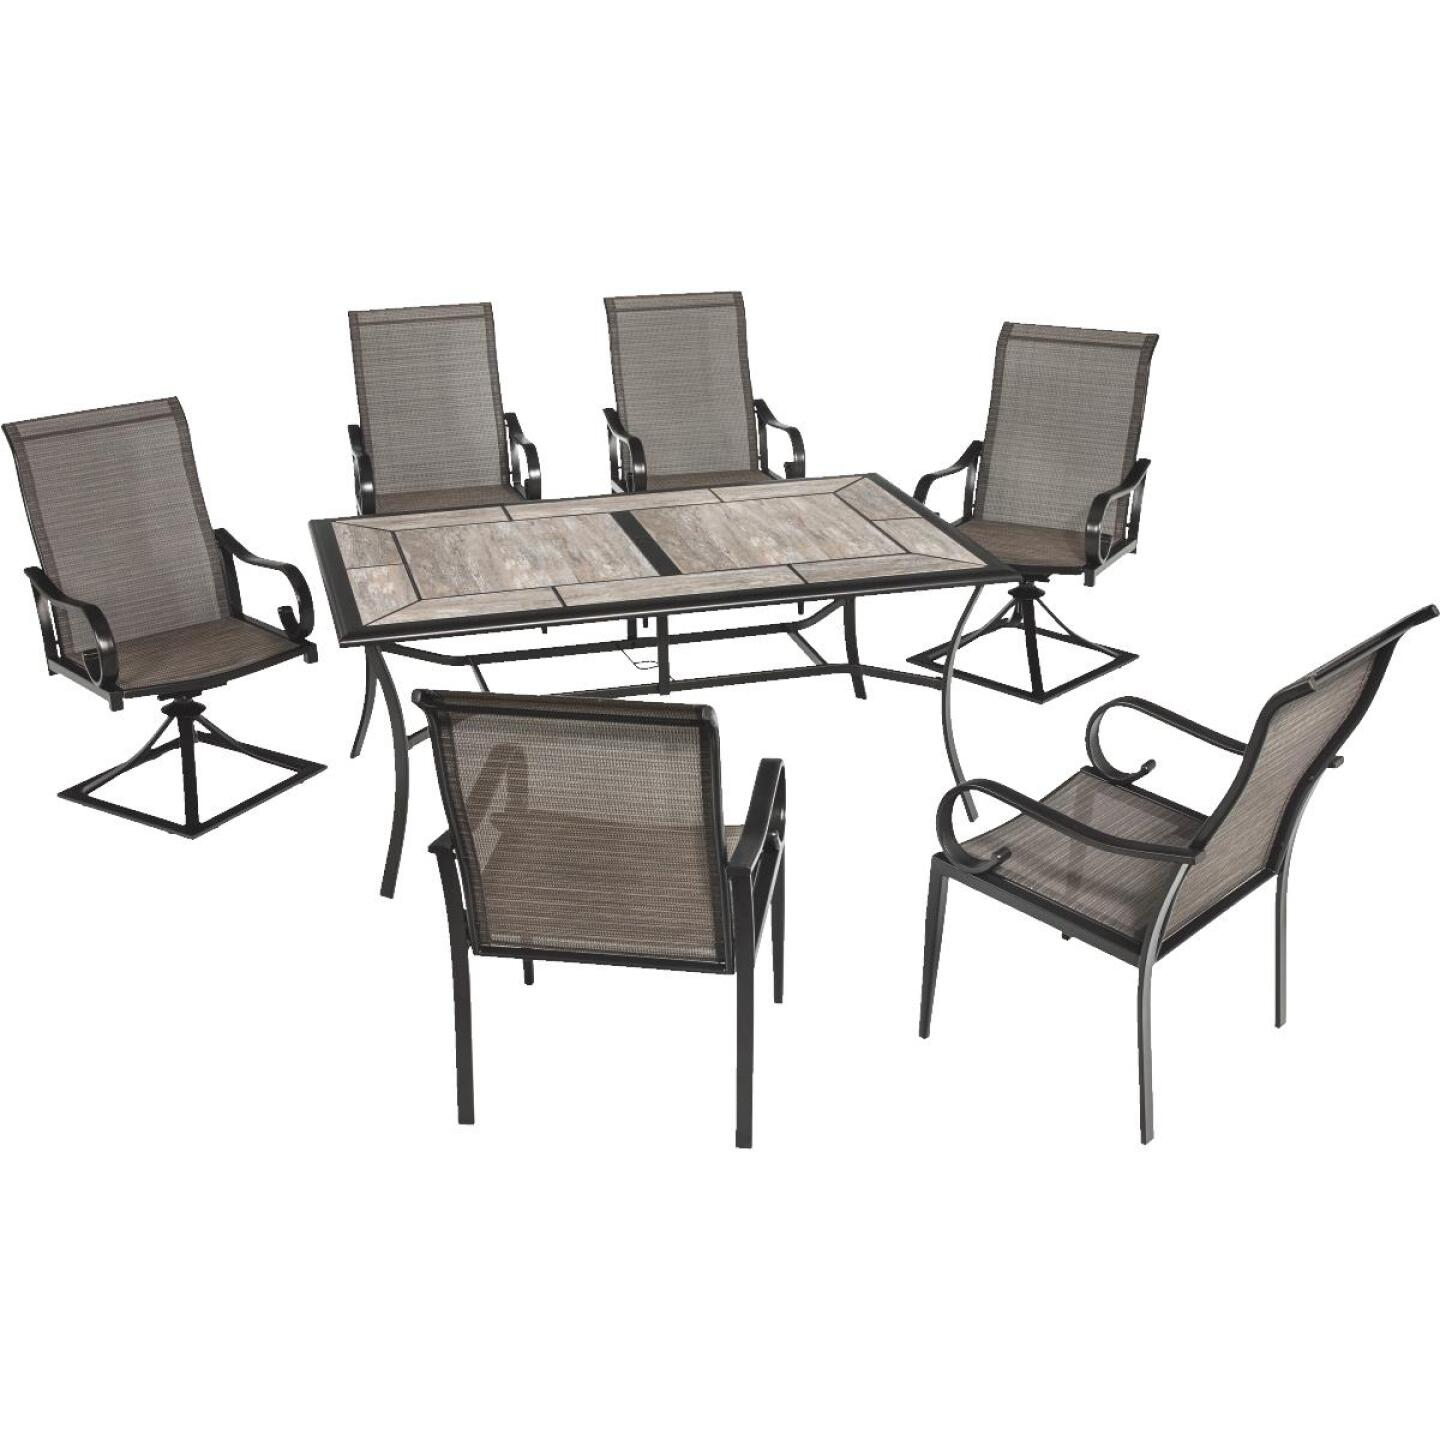 Outdoor Expressions Berkshire 7-Piece Dining Set Image 184